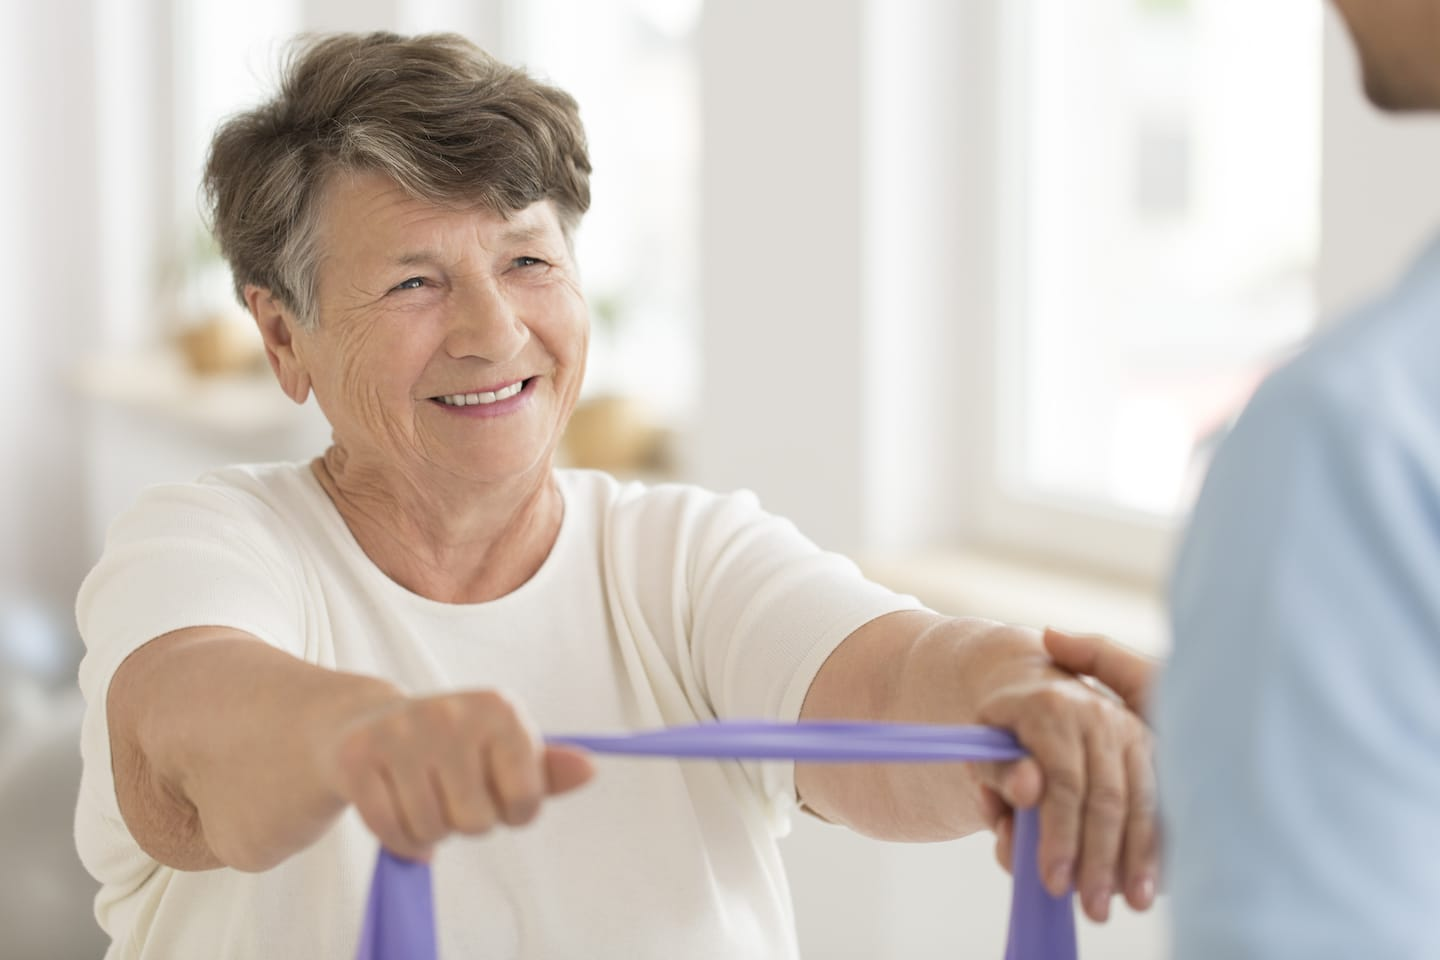 elderly-woman-using-resistance-band-to-stretch-arms